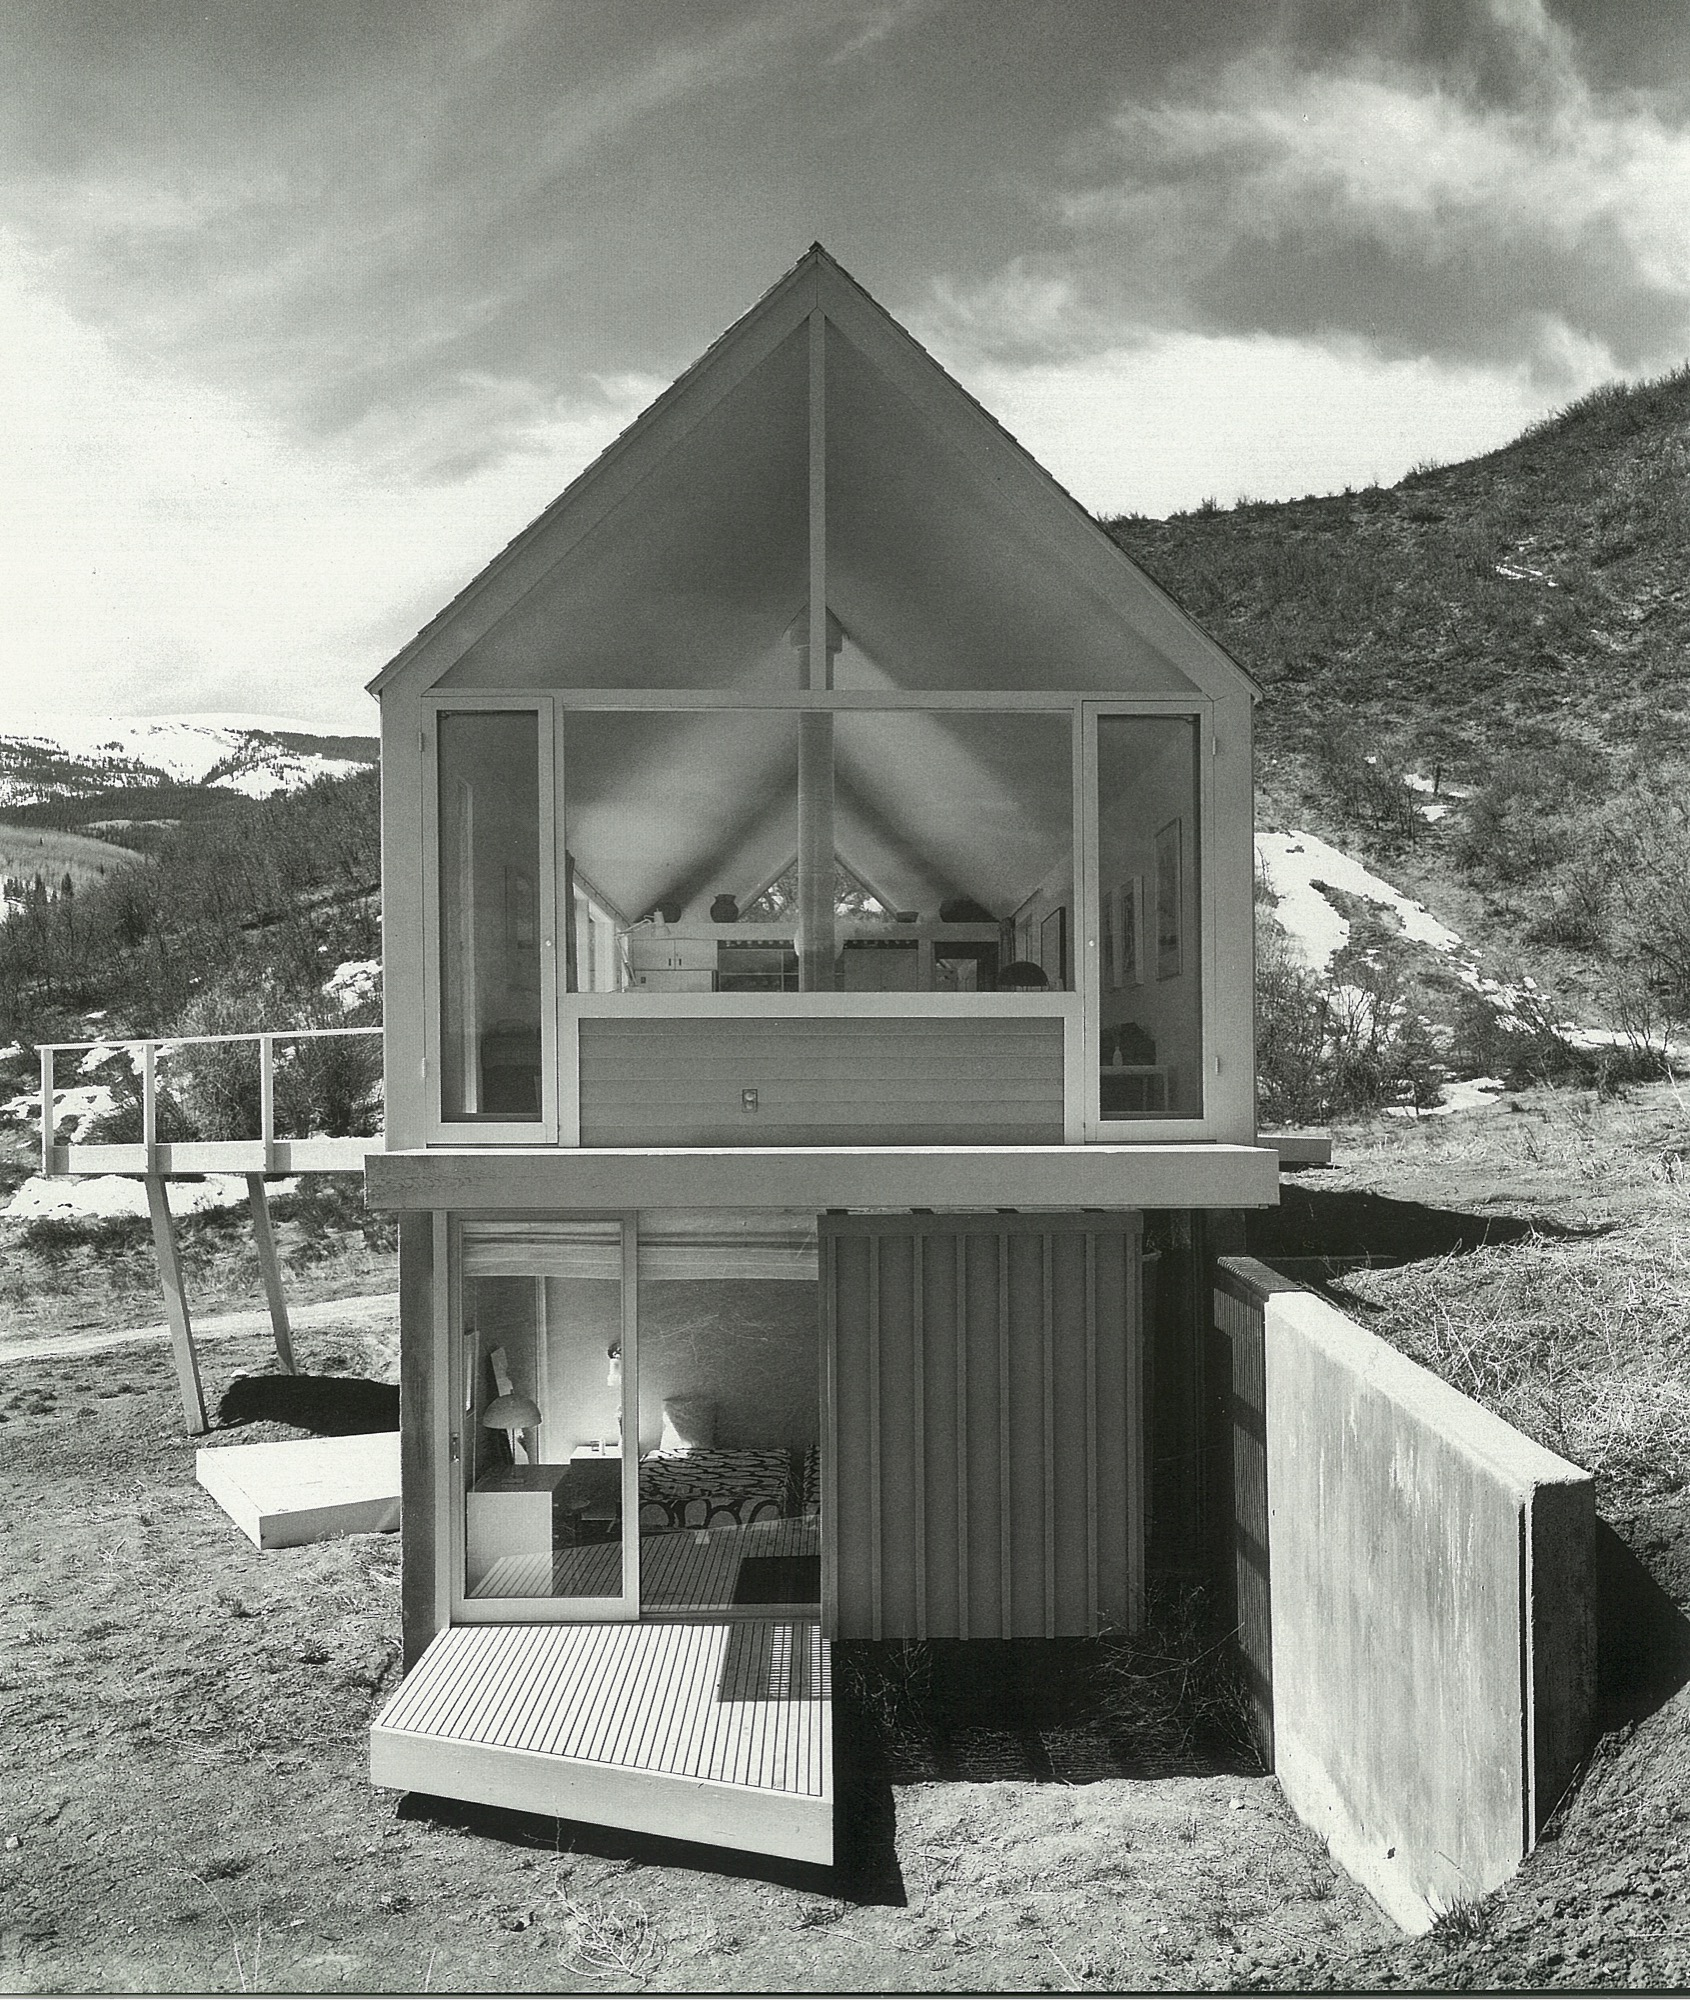 The Lavateili House in Snowmass, Colorado, designed by Harry Weese